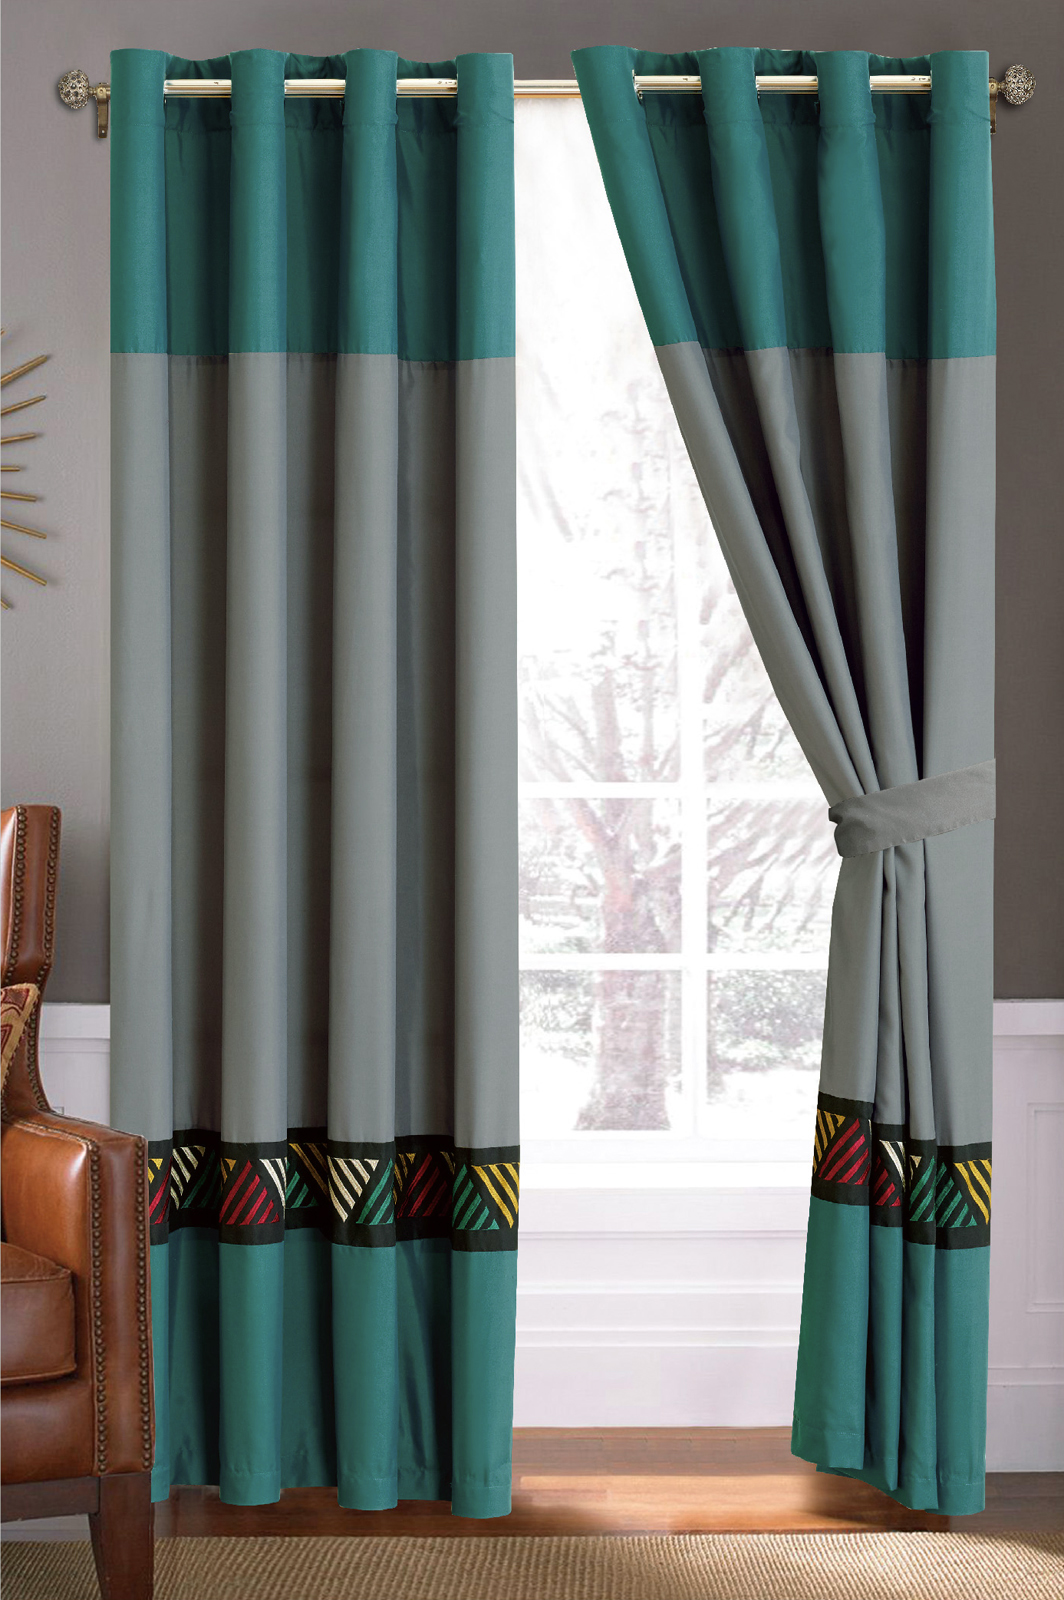 Teal Blur Sheer Curtains Living Room Decorations: 4-Pc Chic Southwest Triangle Embroidery Curtain Set Gray